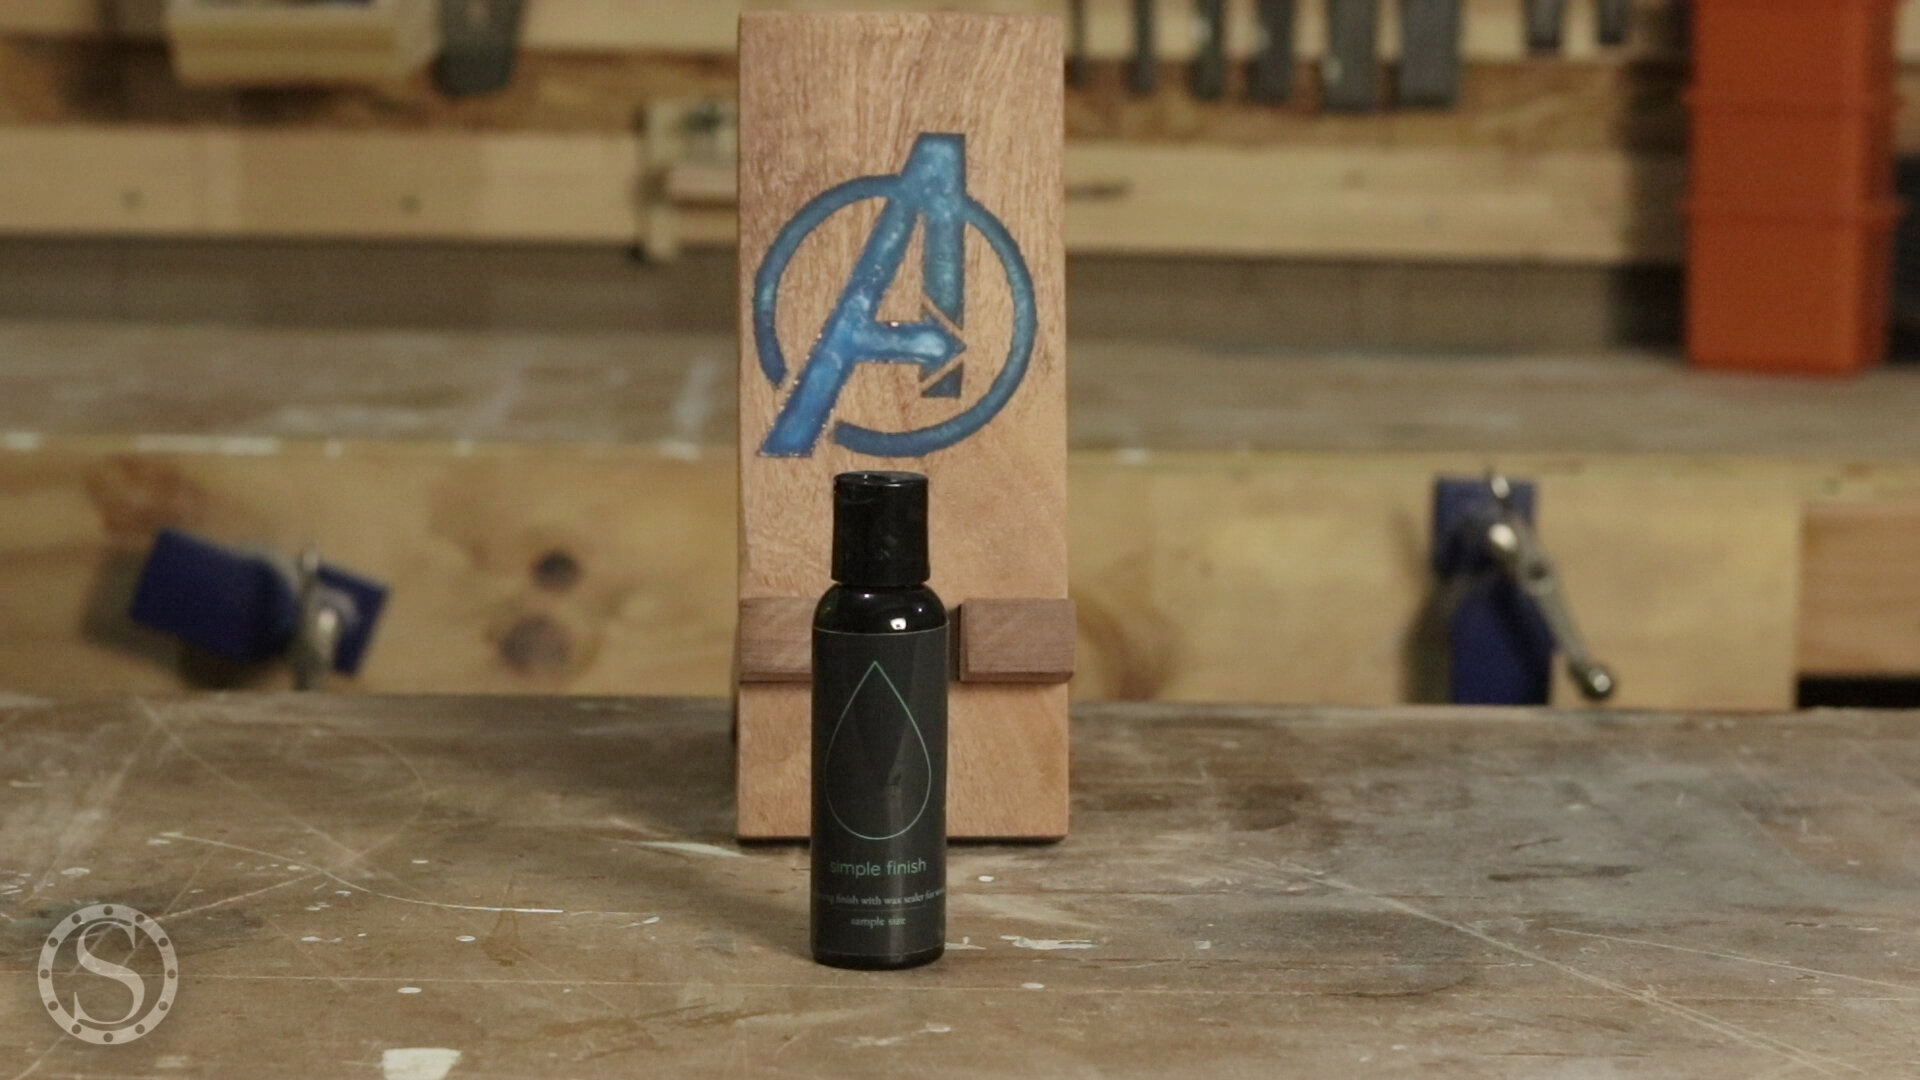 Avengers Phone Holder - Maker Brand Co Simple Finish with Wax for the finish